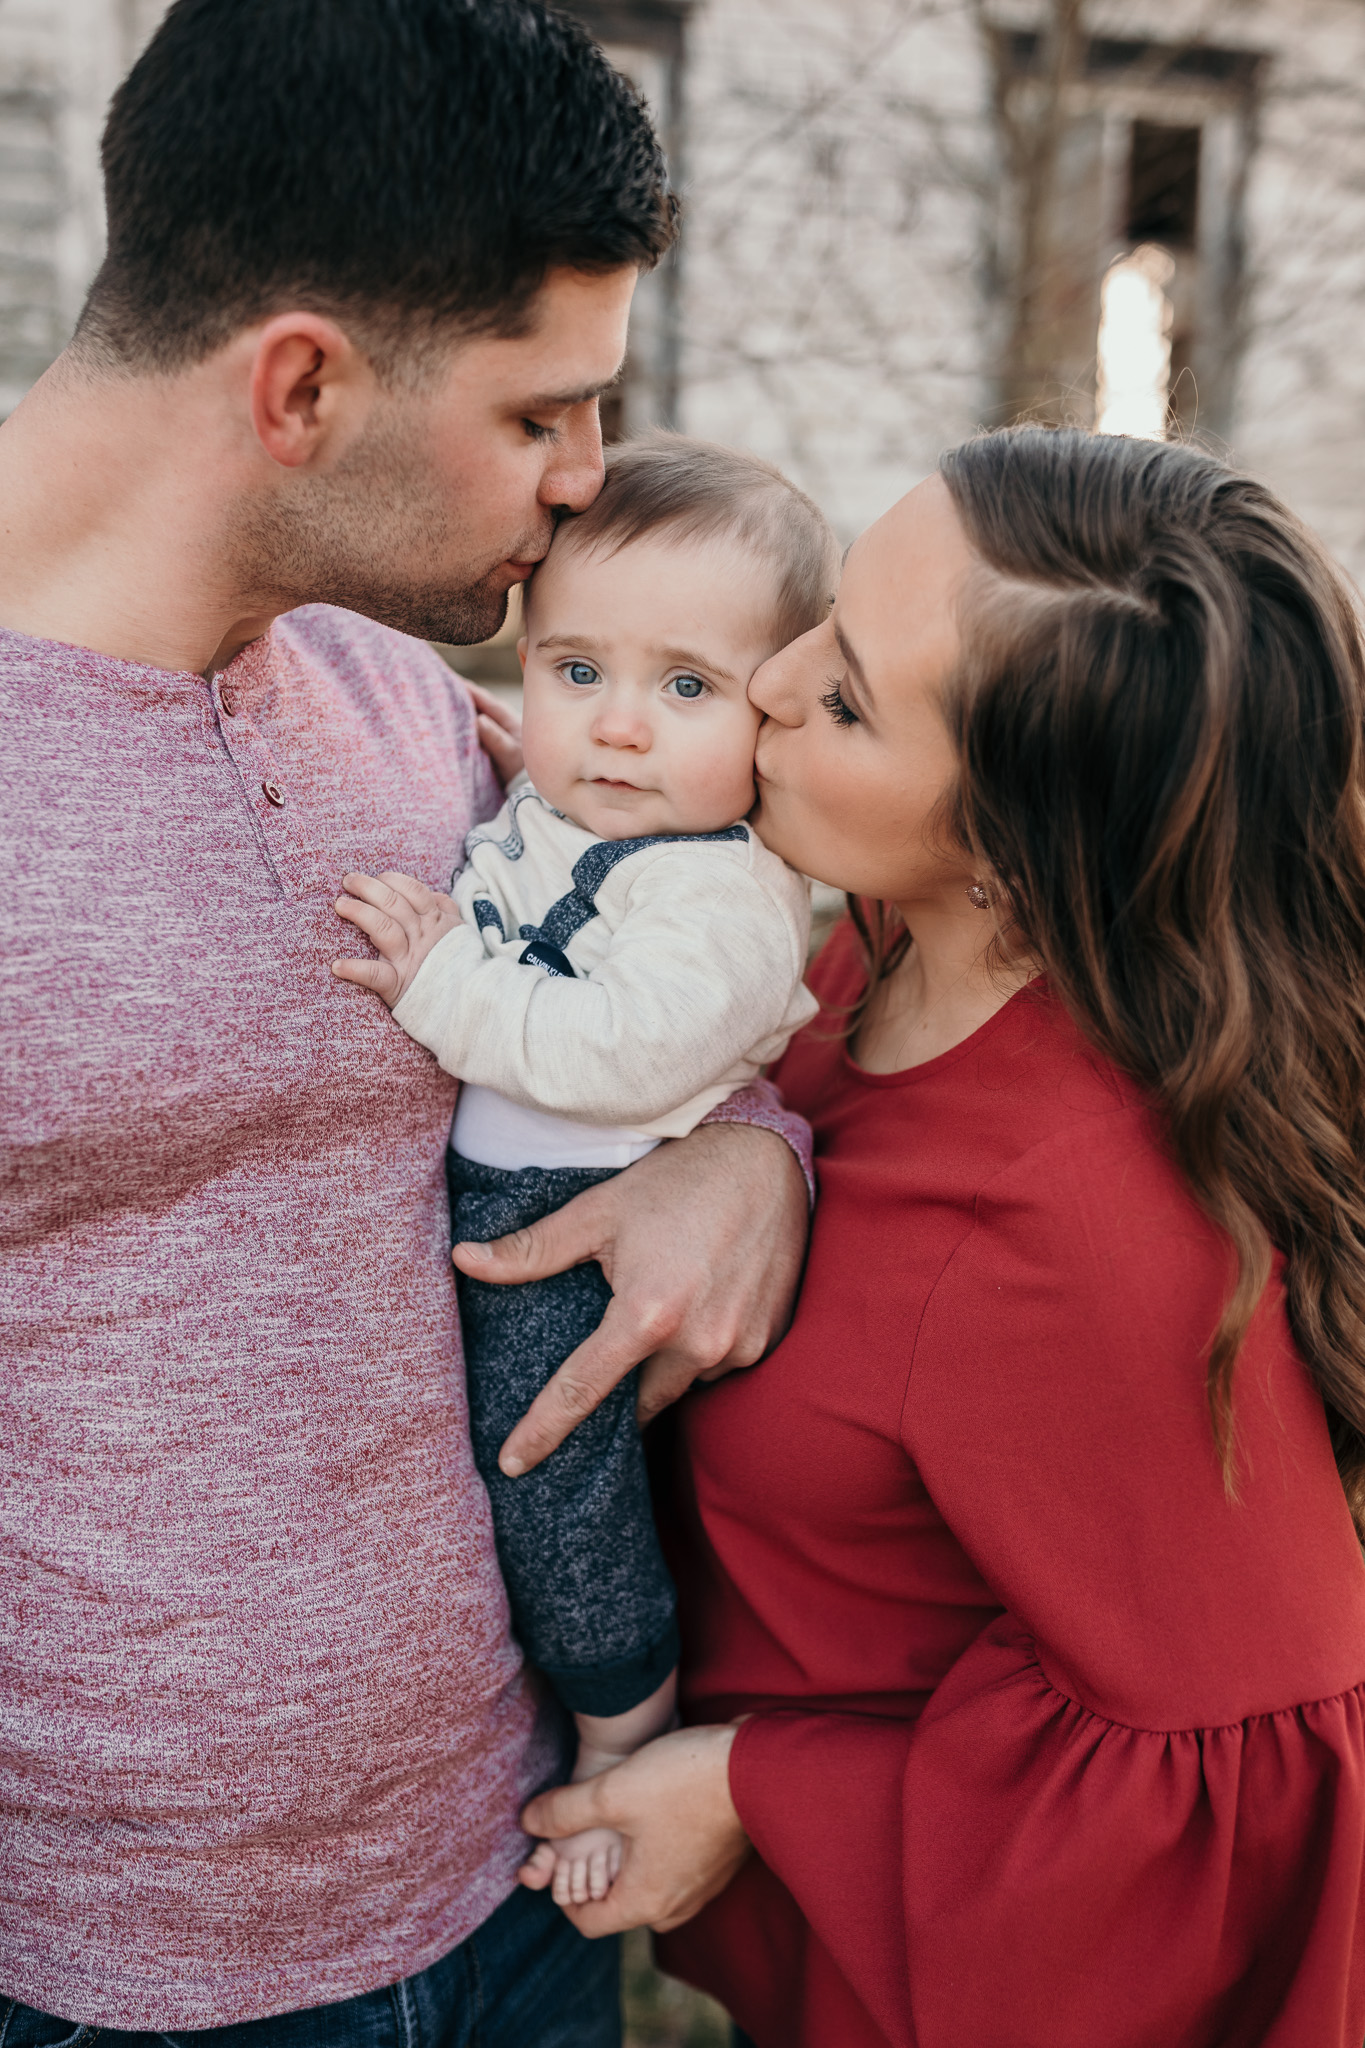 Family Photo Kissing Child